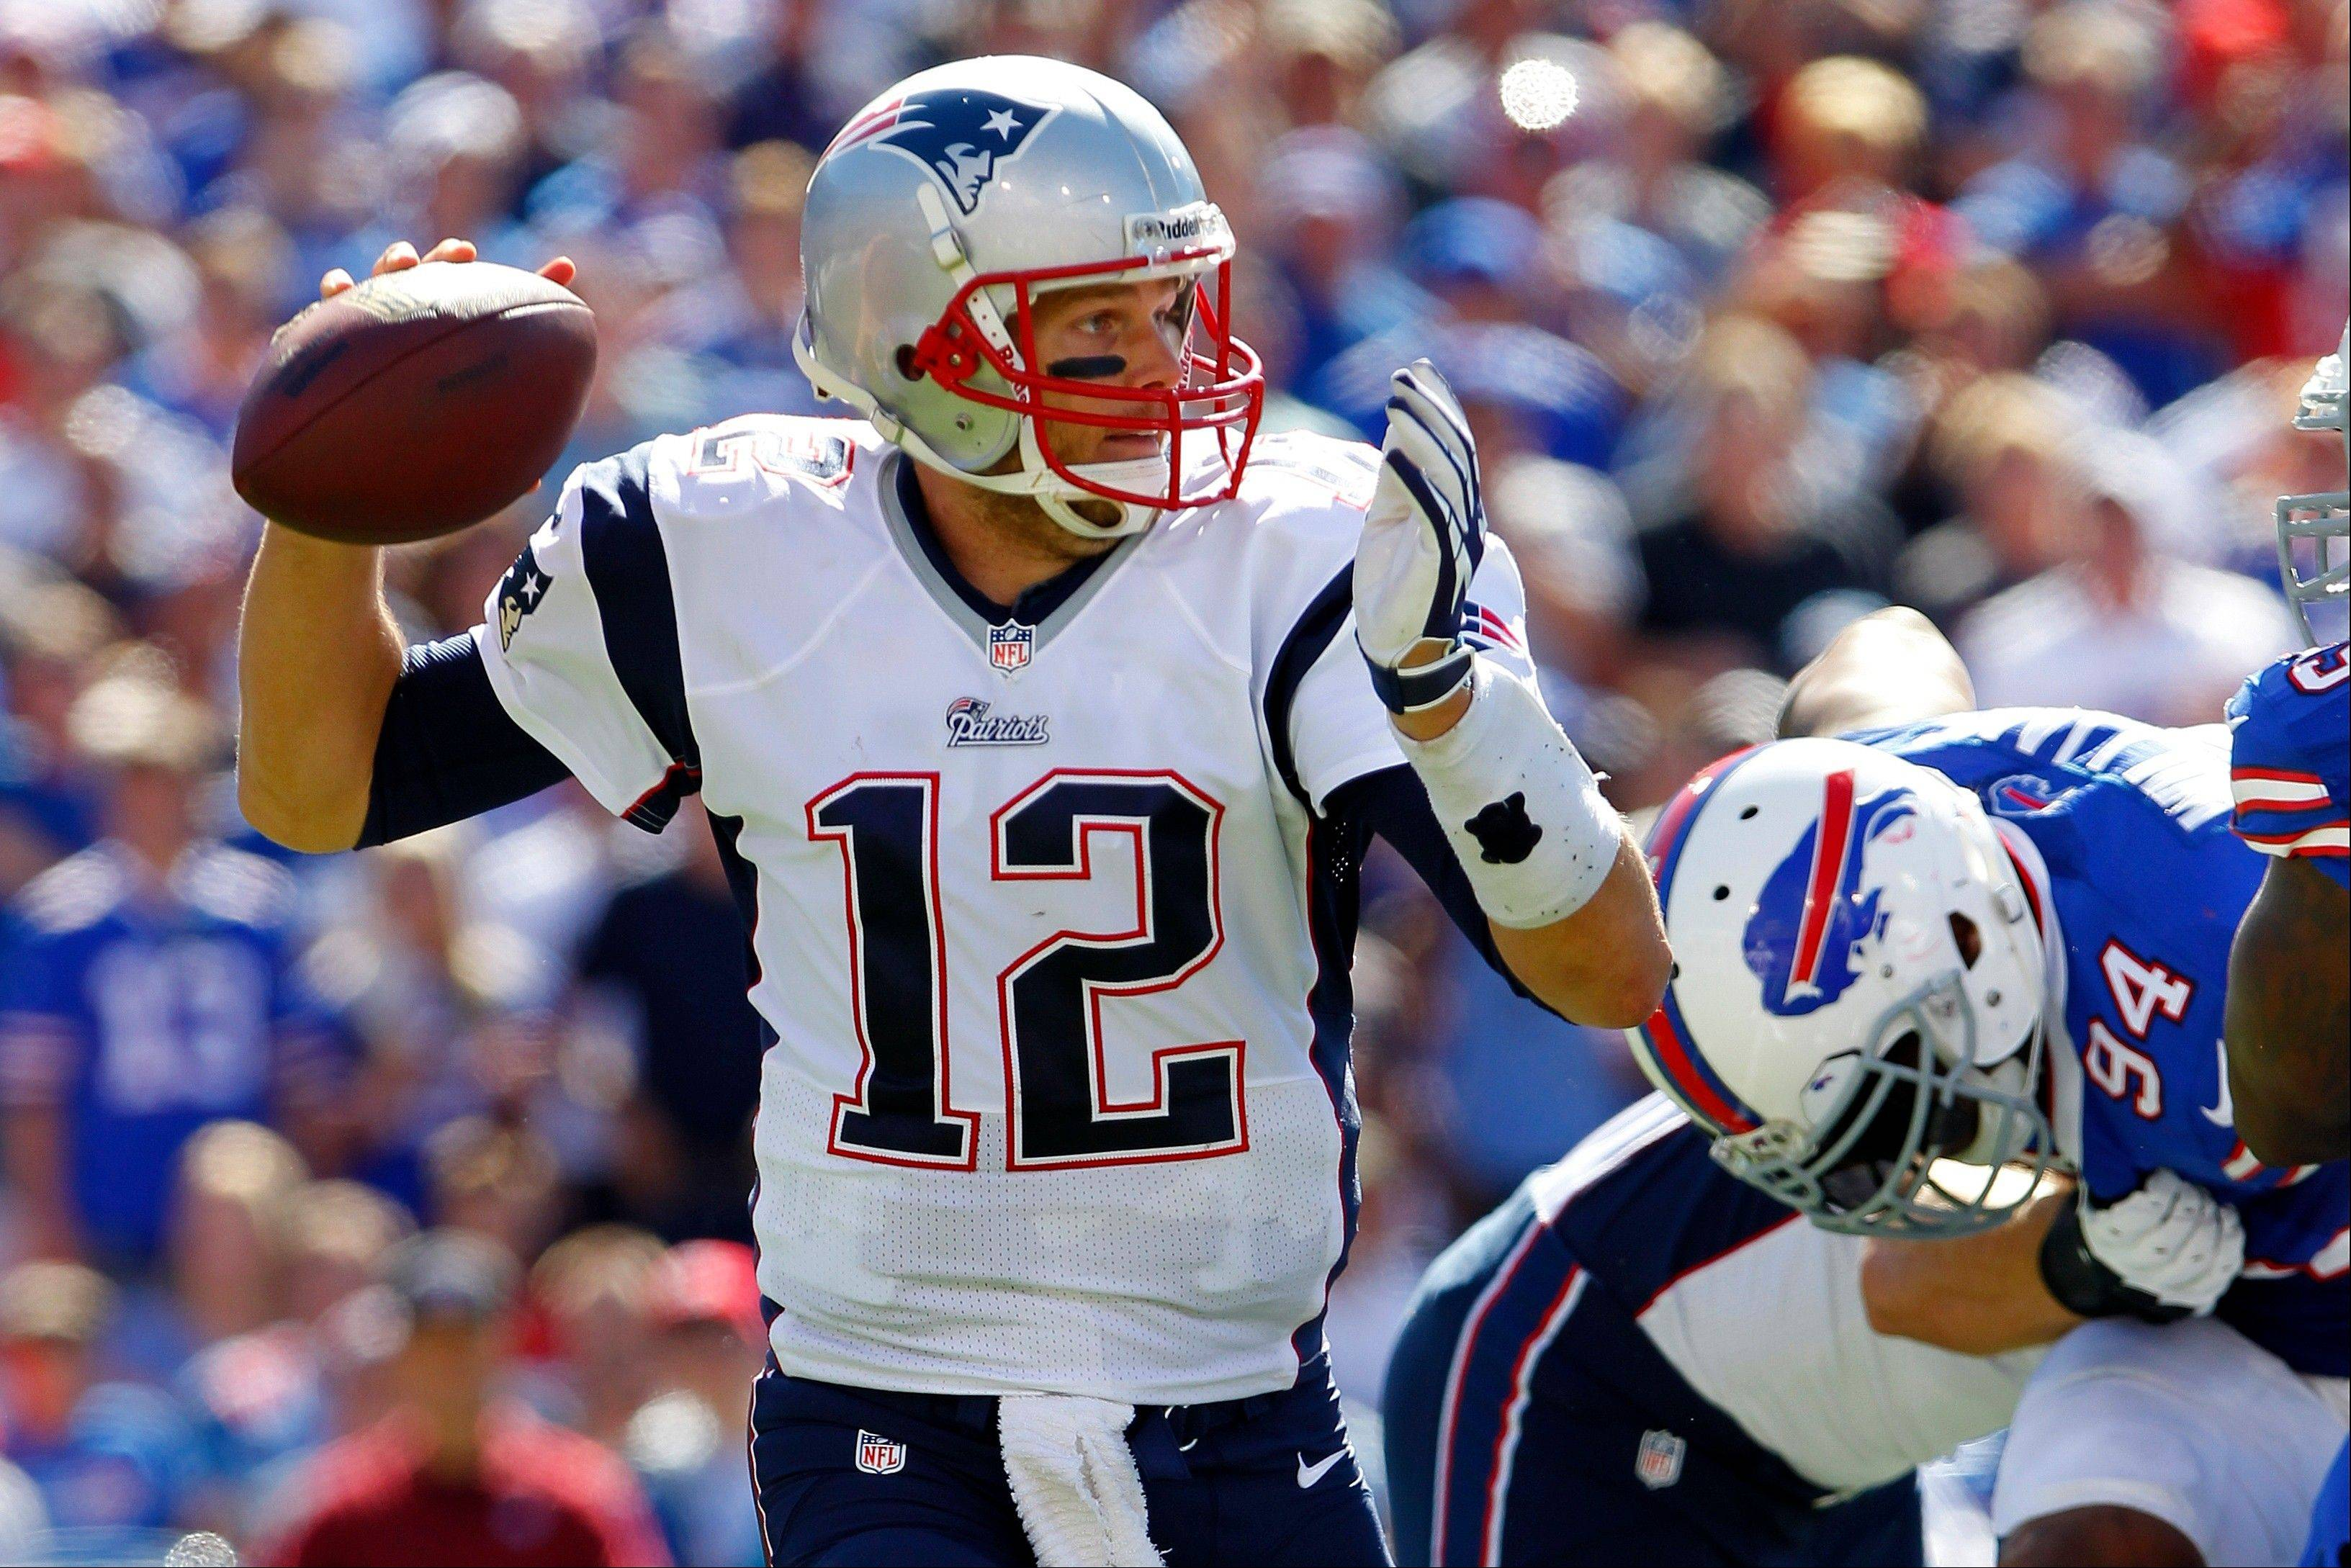 New England Patriots quarterback Tom Brady (12) throws a pass during the second half of an NFL football game against the Buffalo Bills, Sunday, Sept. 8, 2013, in Orchard Park.